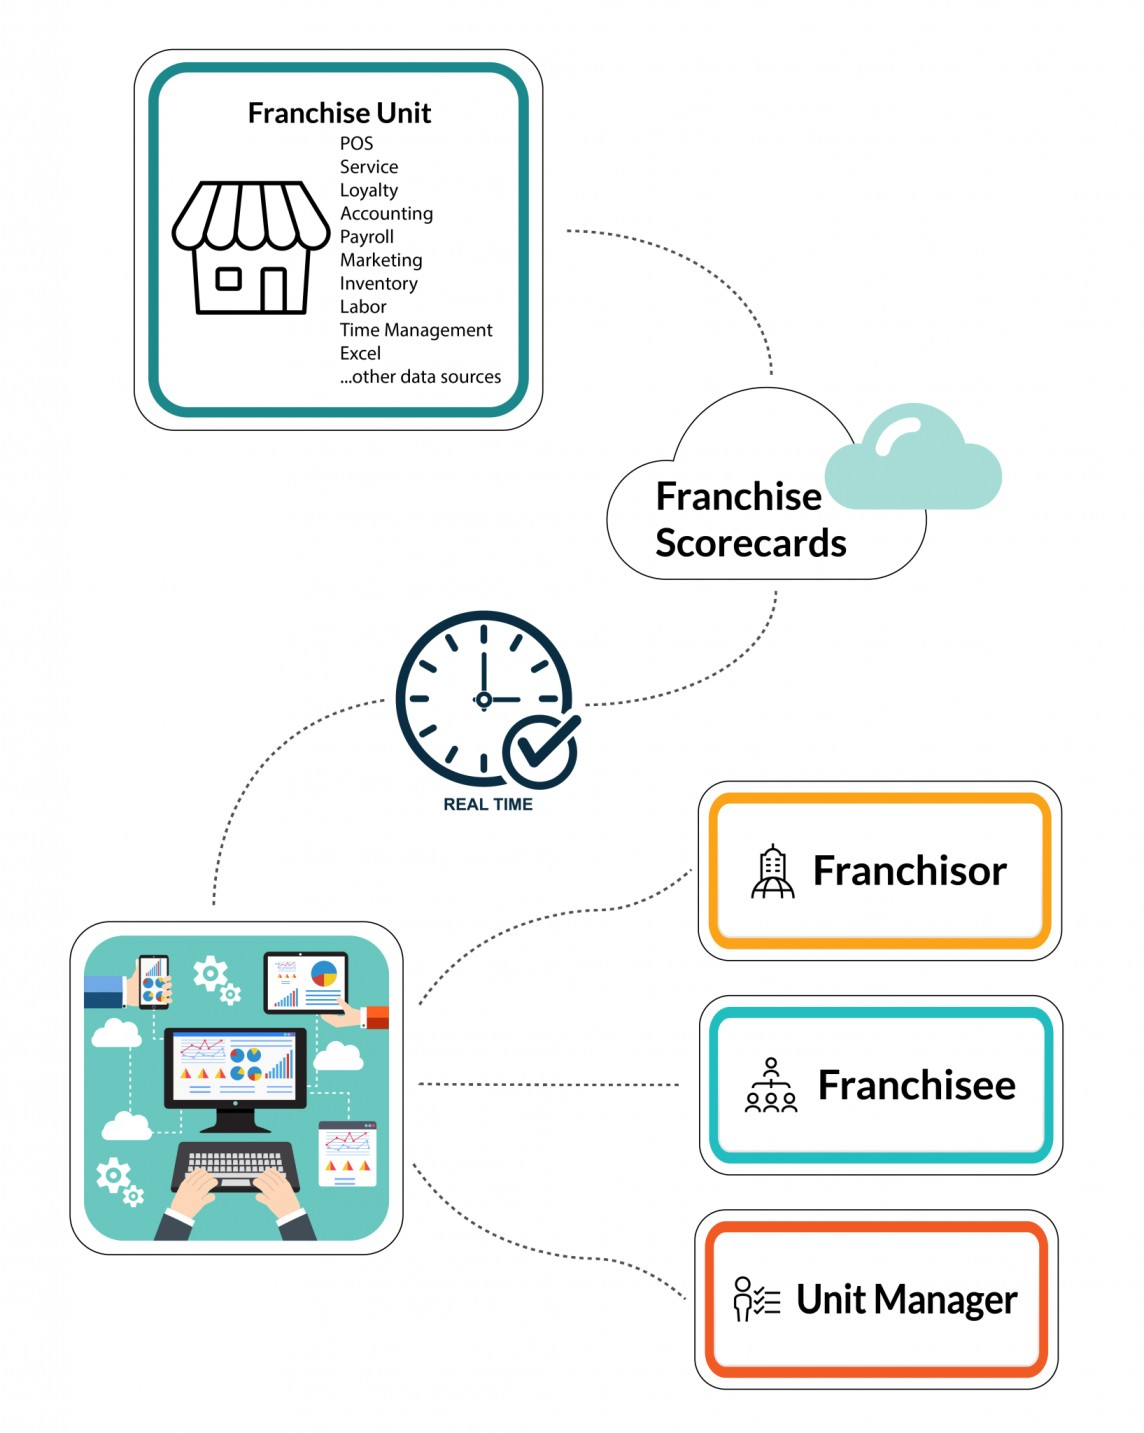 technology is helping bring agility to franchise business